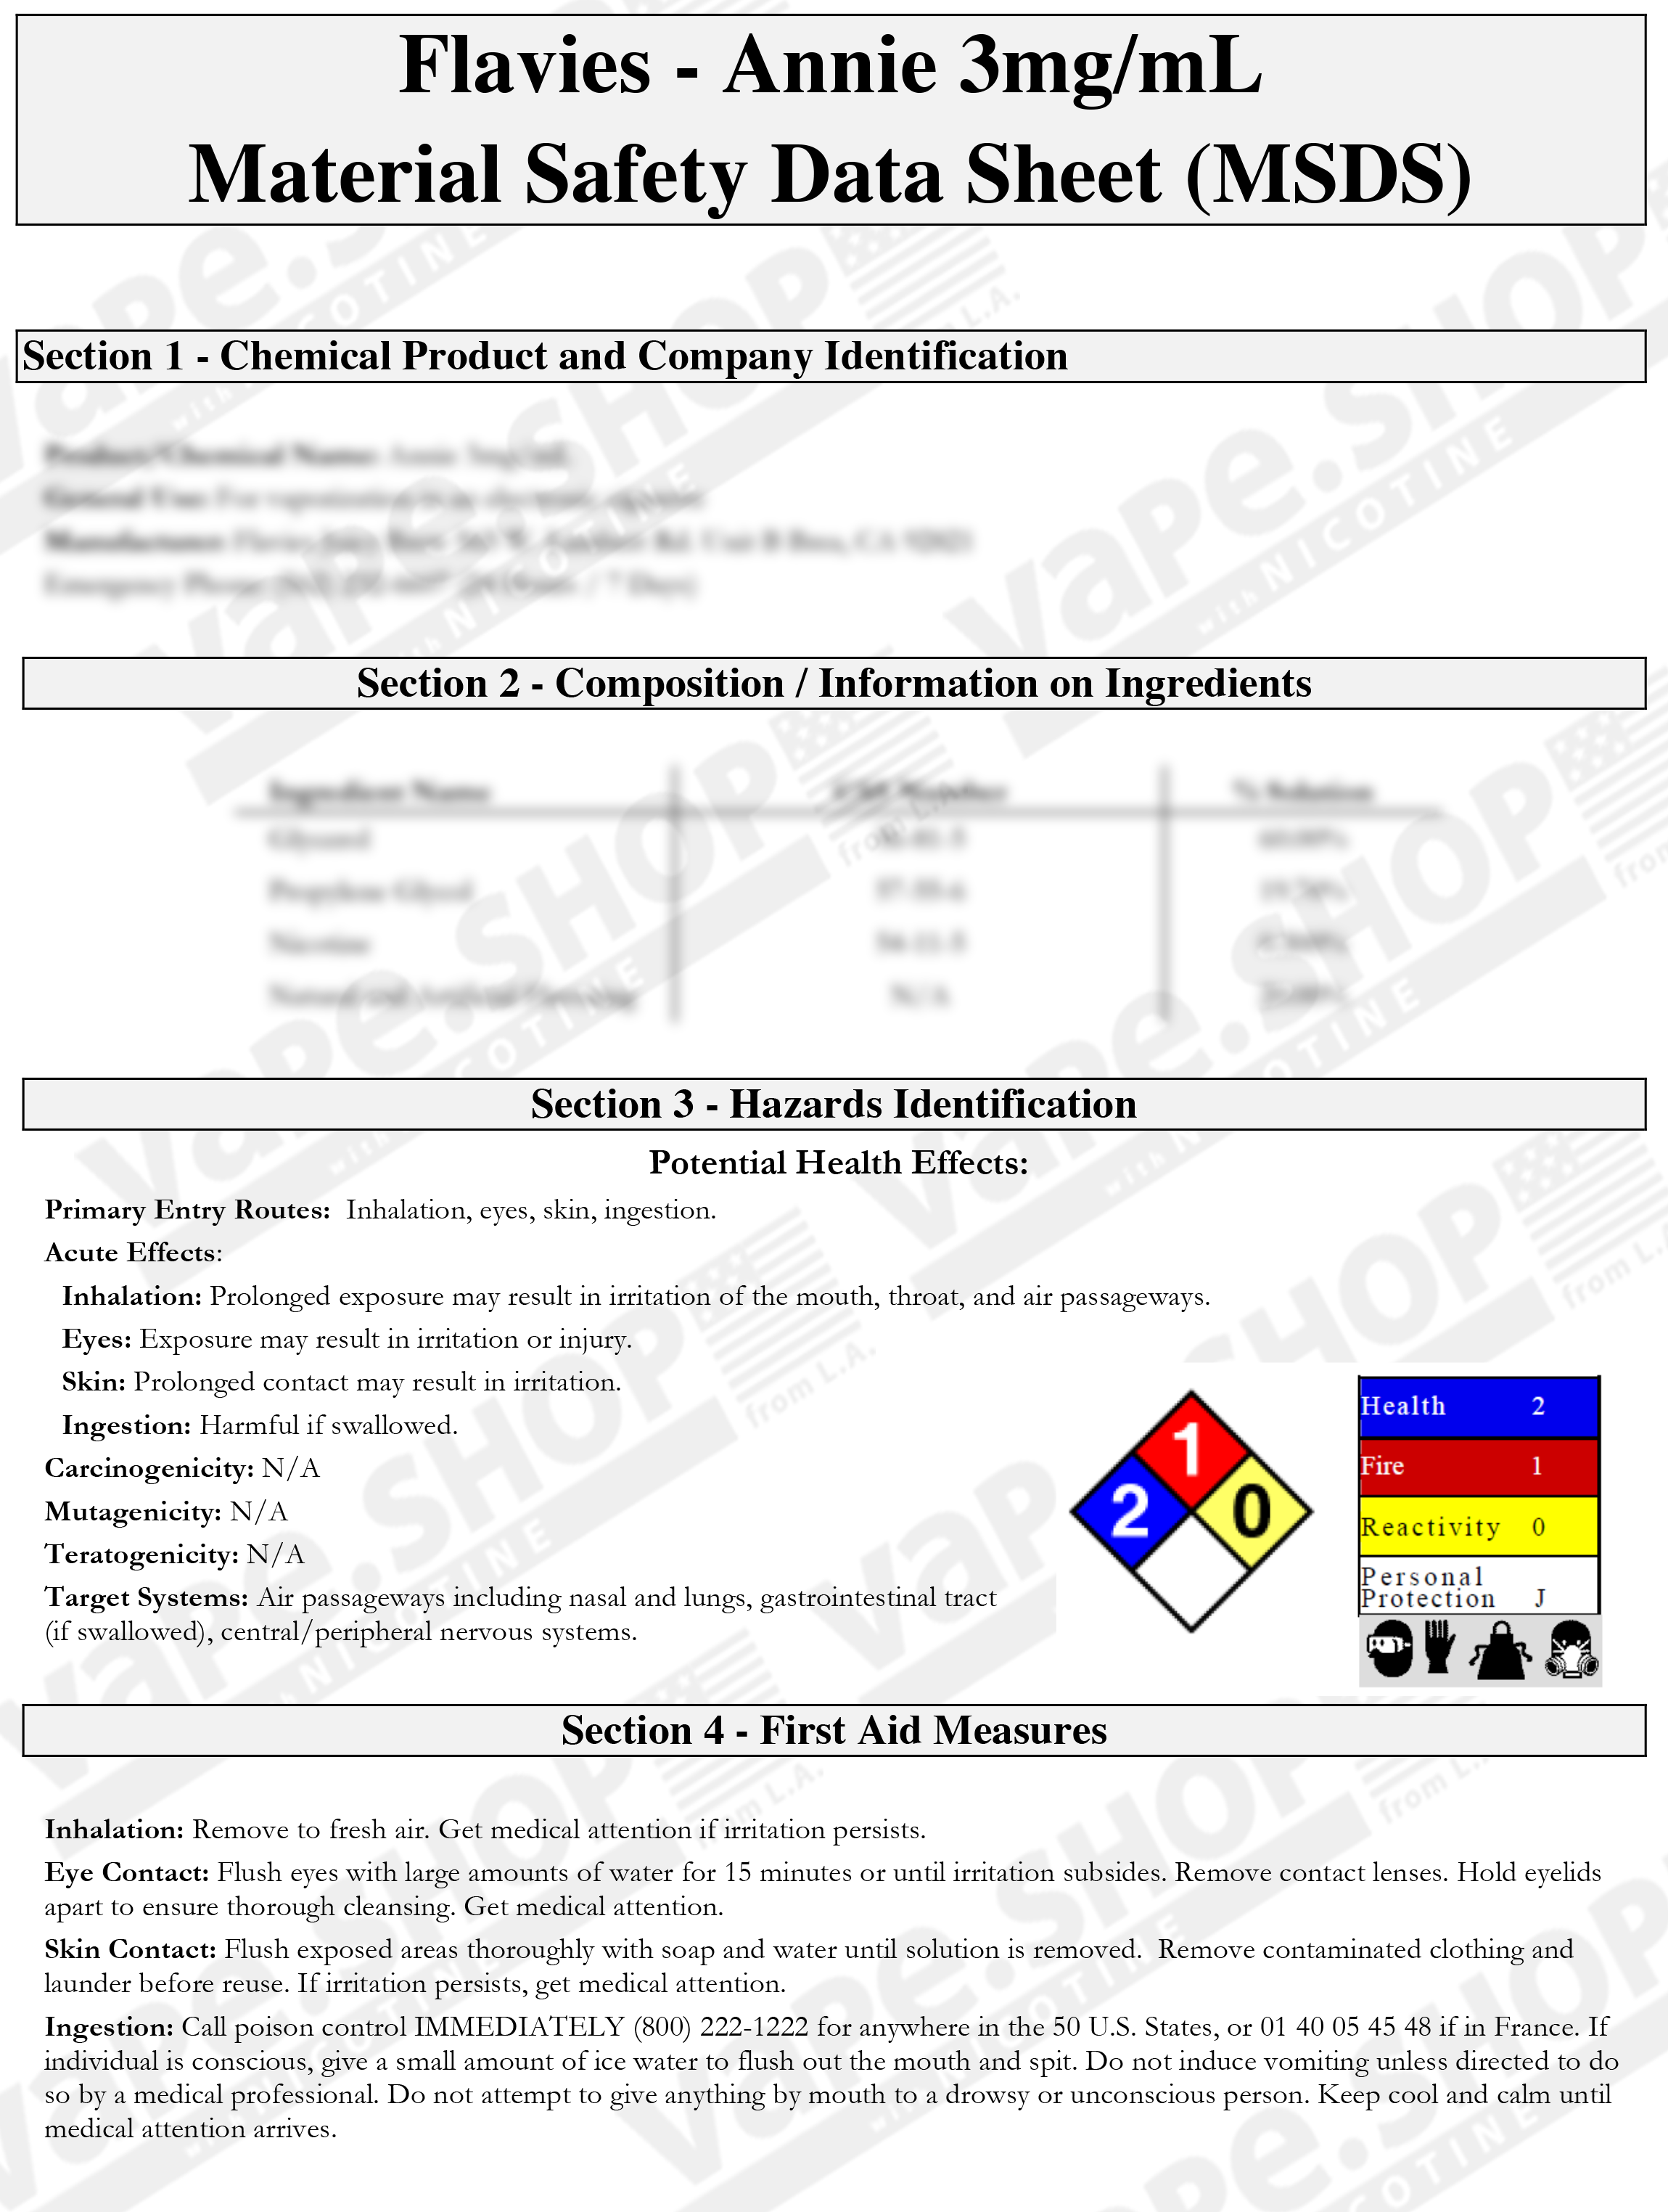 Flaviesの安全データシート(Safety Data Sheet)